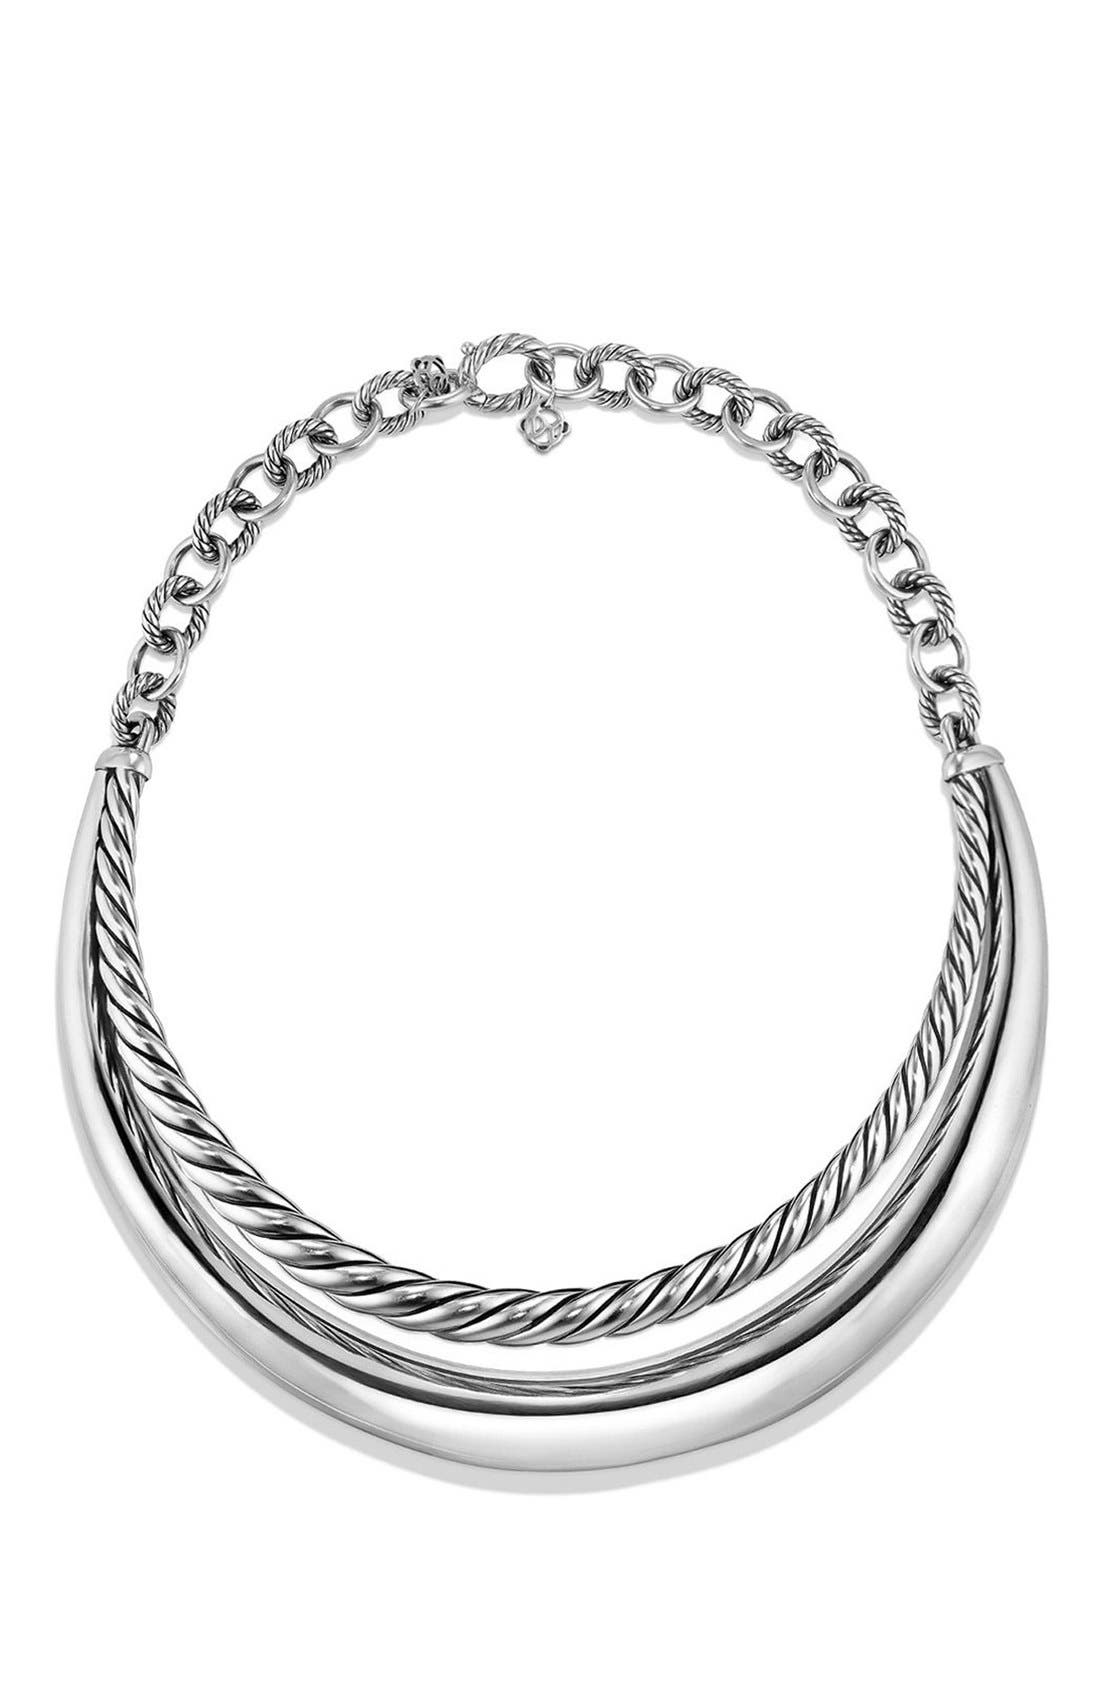 Pure Form Collar Necklace,                         Main,                         color, Silver